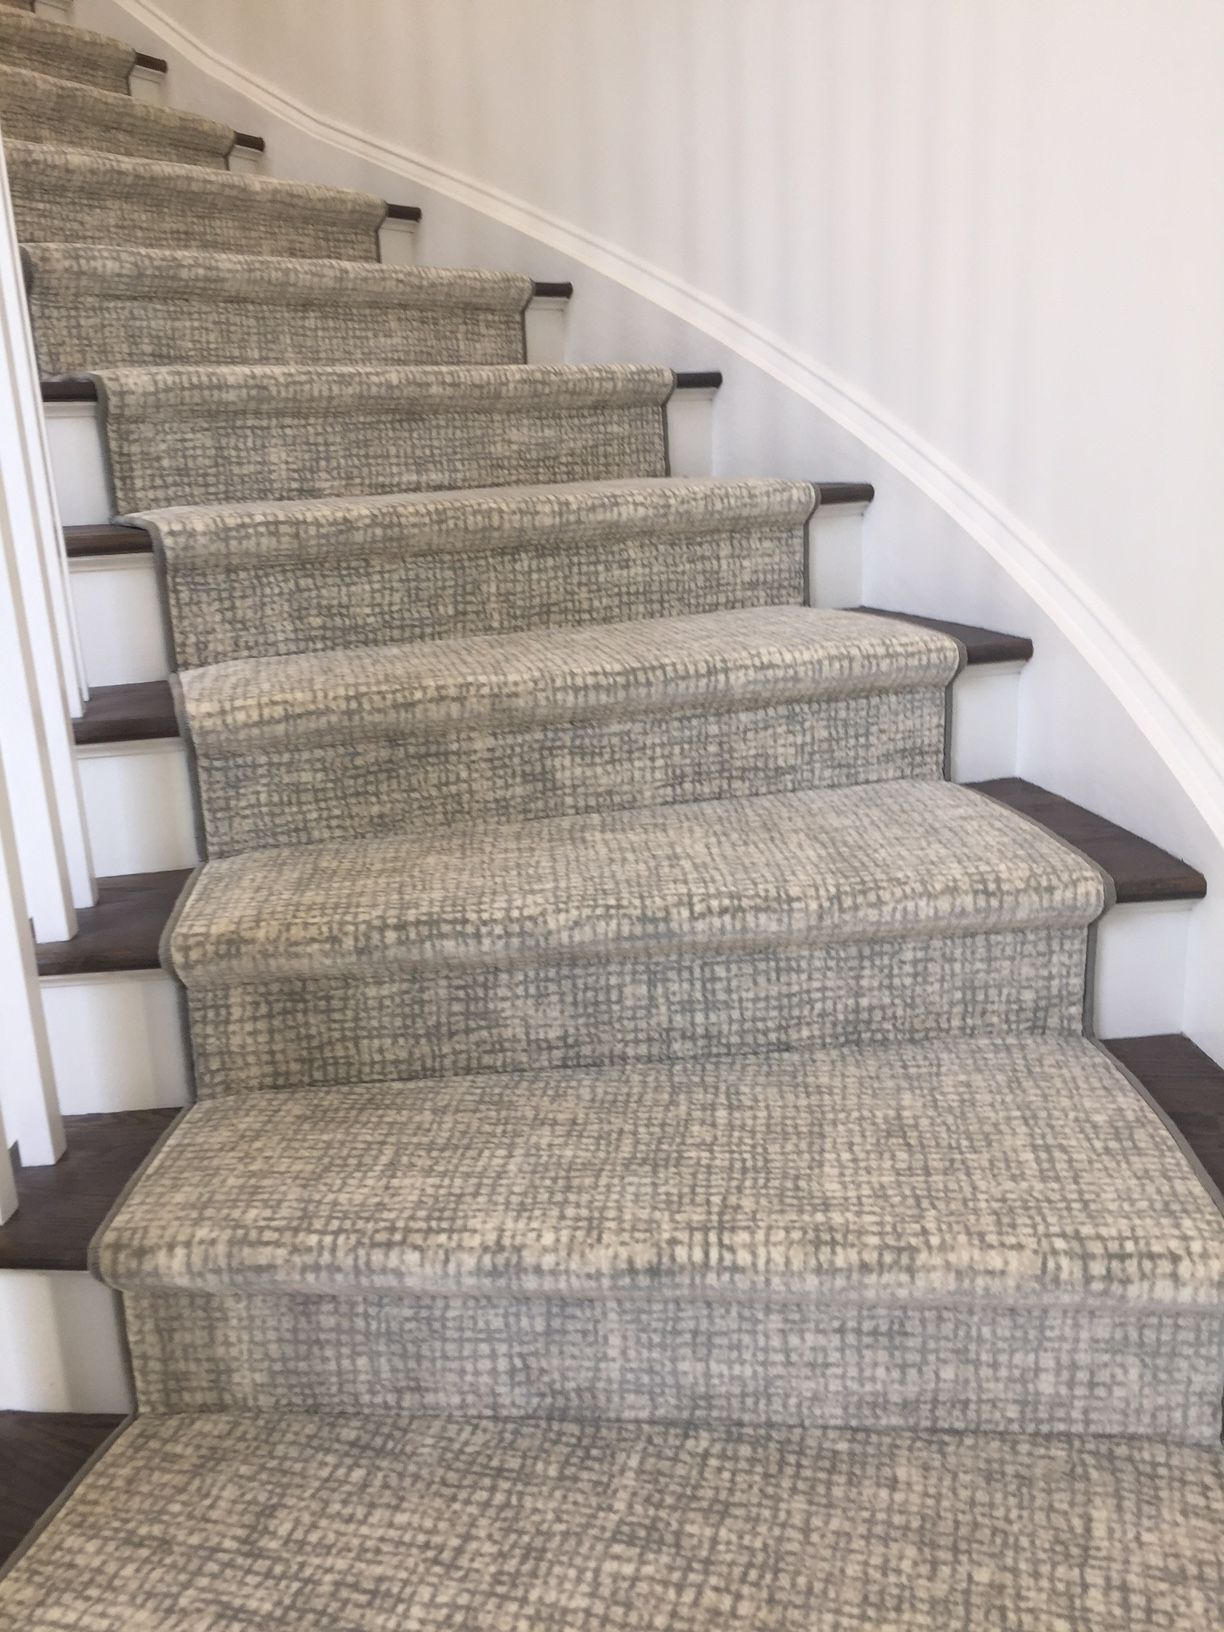 Best Install Of Carpet One Curved Staircase Runner With 400 x 300